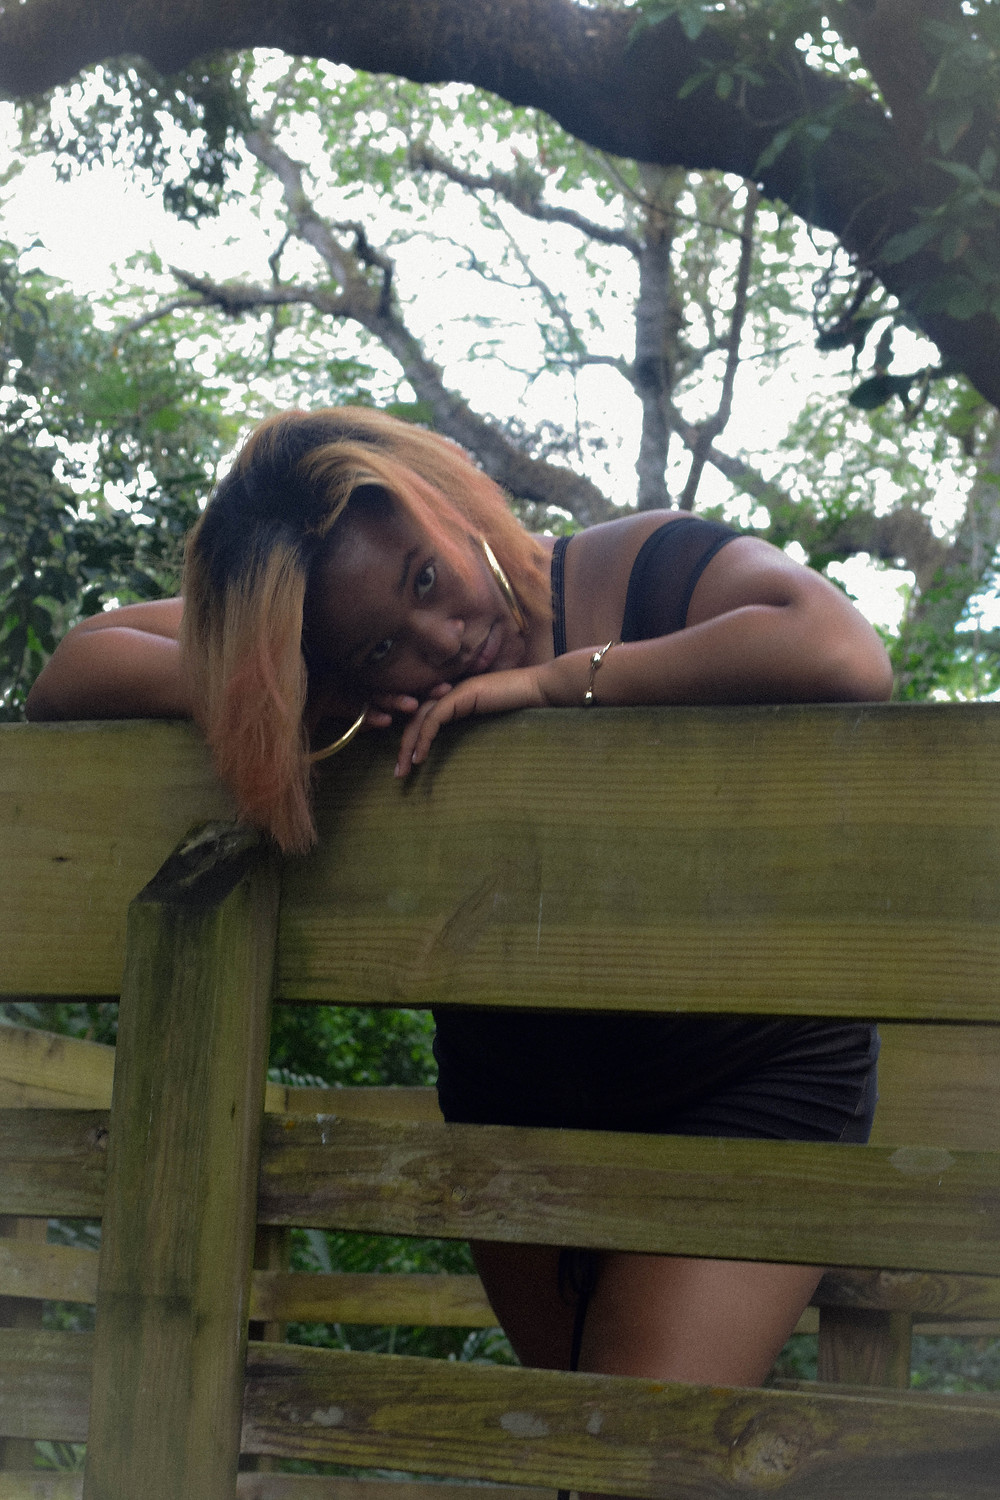 NEXT UP: Zaniyah. R&B singer based in/from Miami. Photography by Dreina Bautista